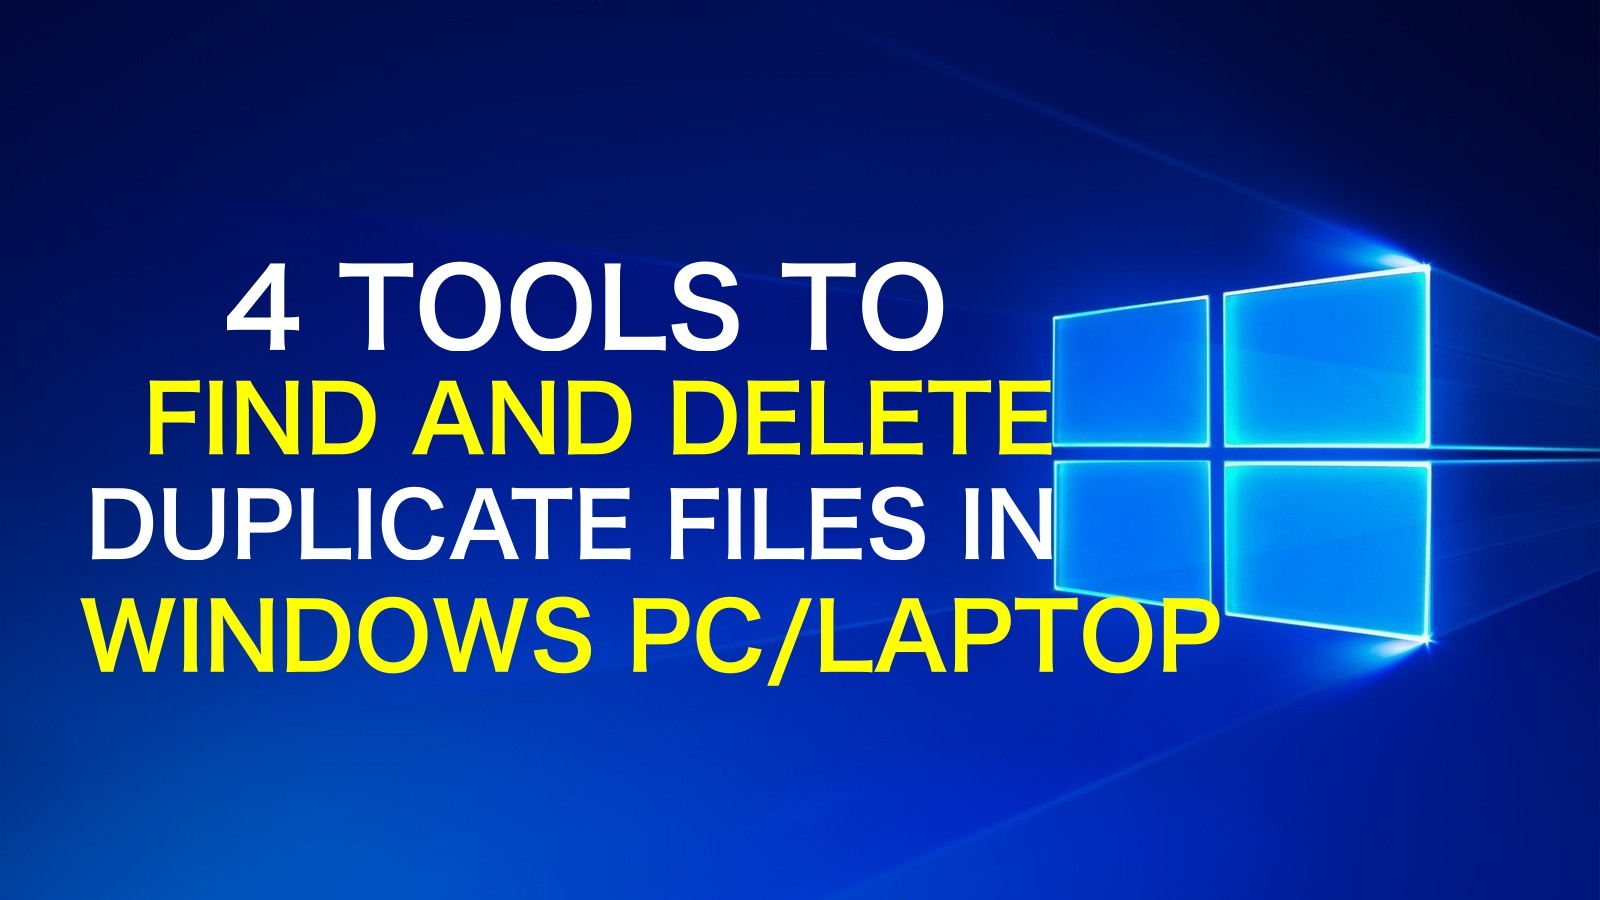 find-delete-duplicate-files-photos-doccuments-in-windows-pc-laptop